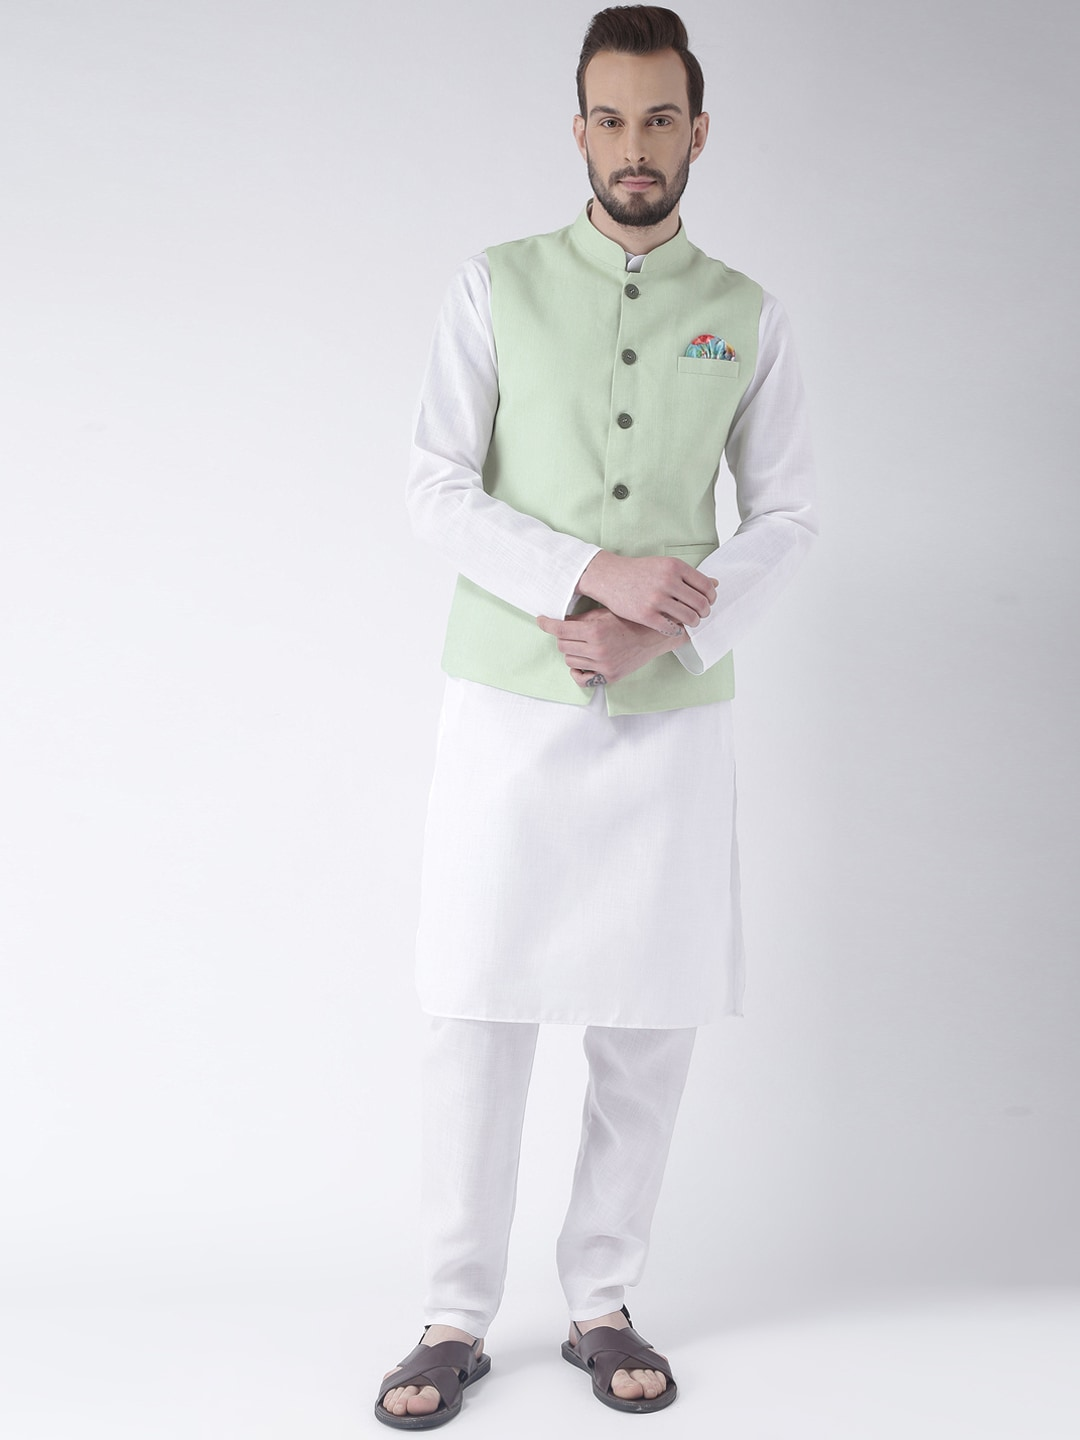 69815e55593d4 Men Kurtas Sets Kurta Sets Suits Sunglasses - Buy Men Kurtas Sets Kurta  Sets Suits Sunglasses online in India